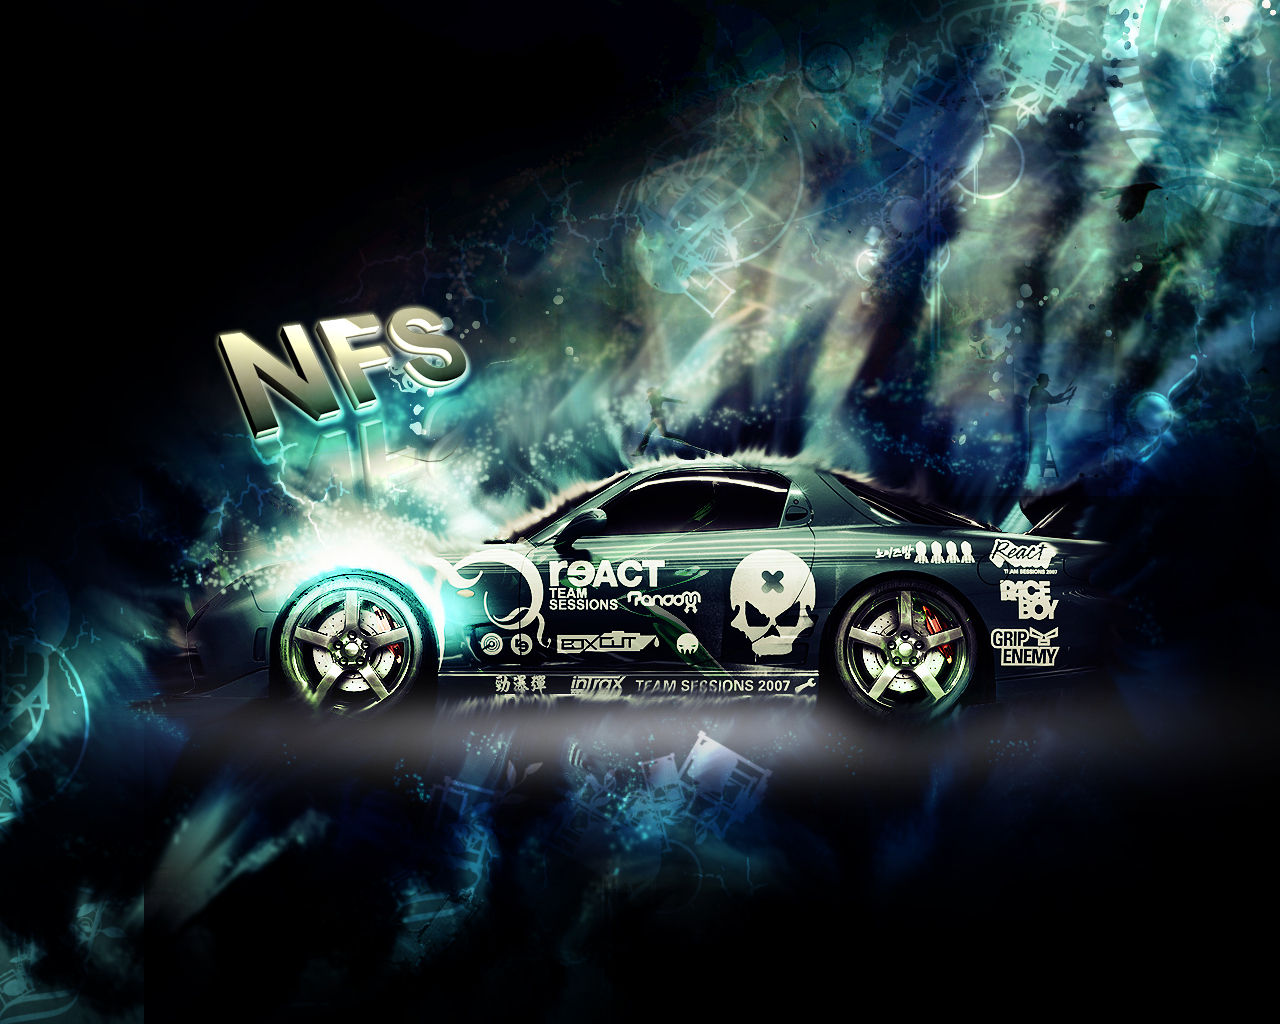 NFS Pro street wallpaper by No10x 1280x1024